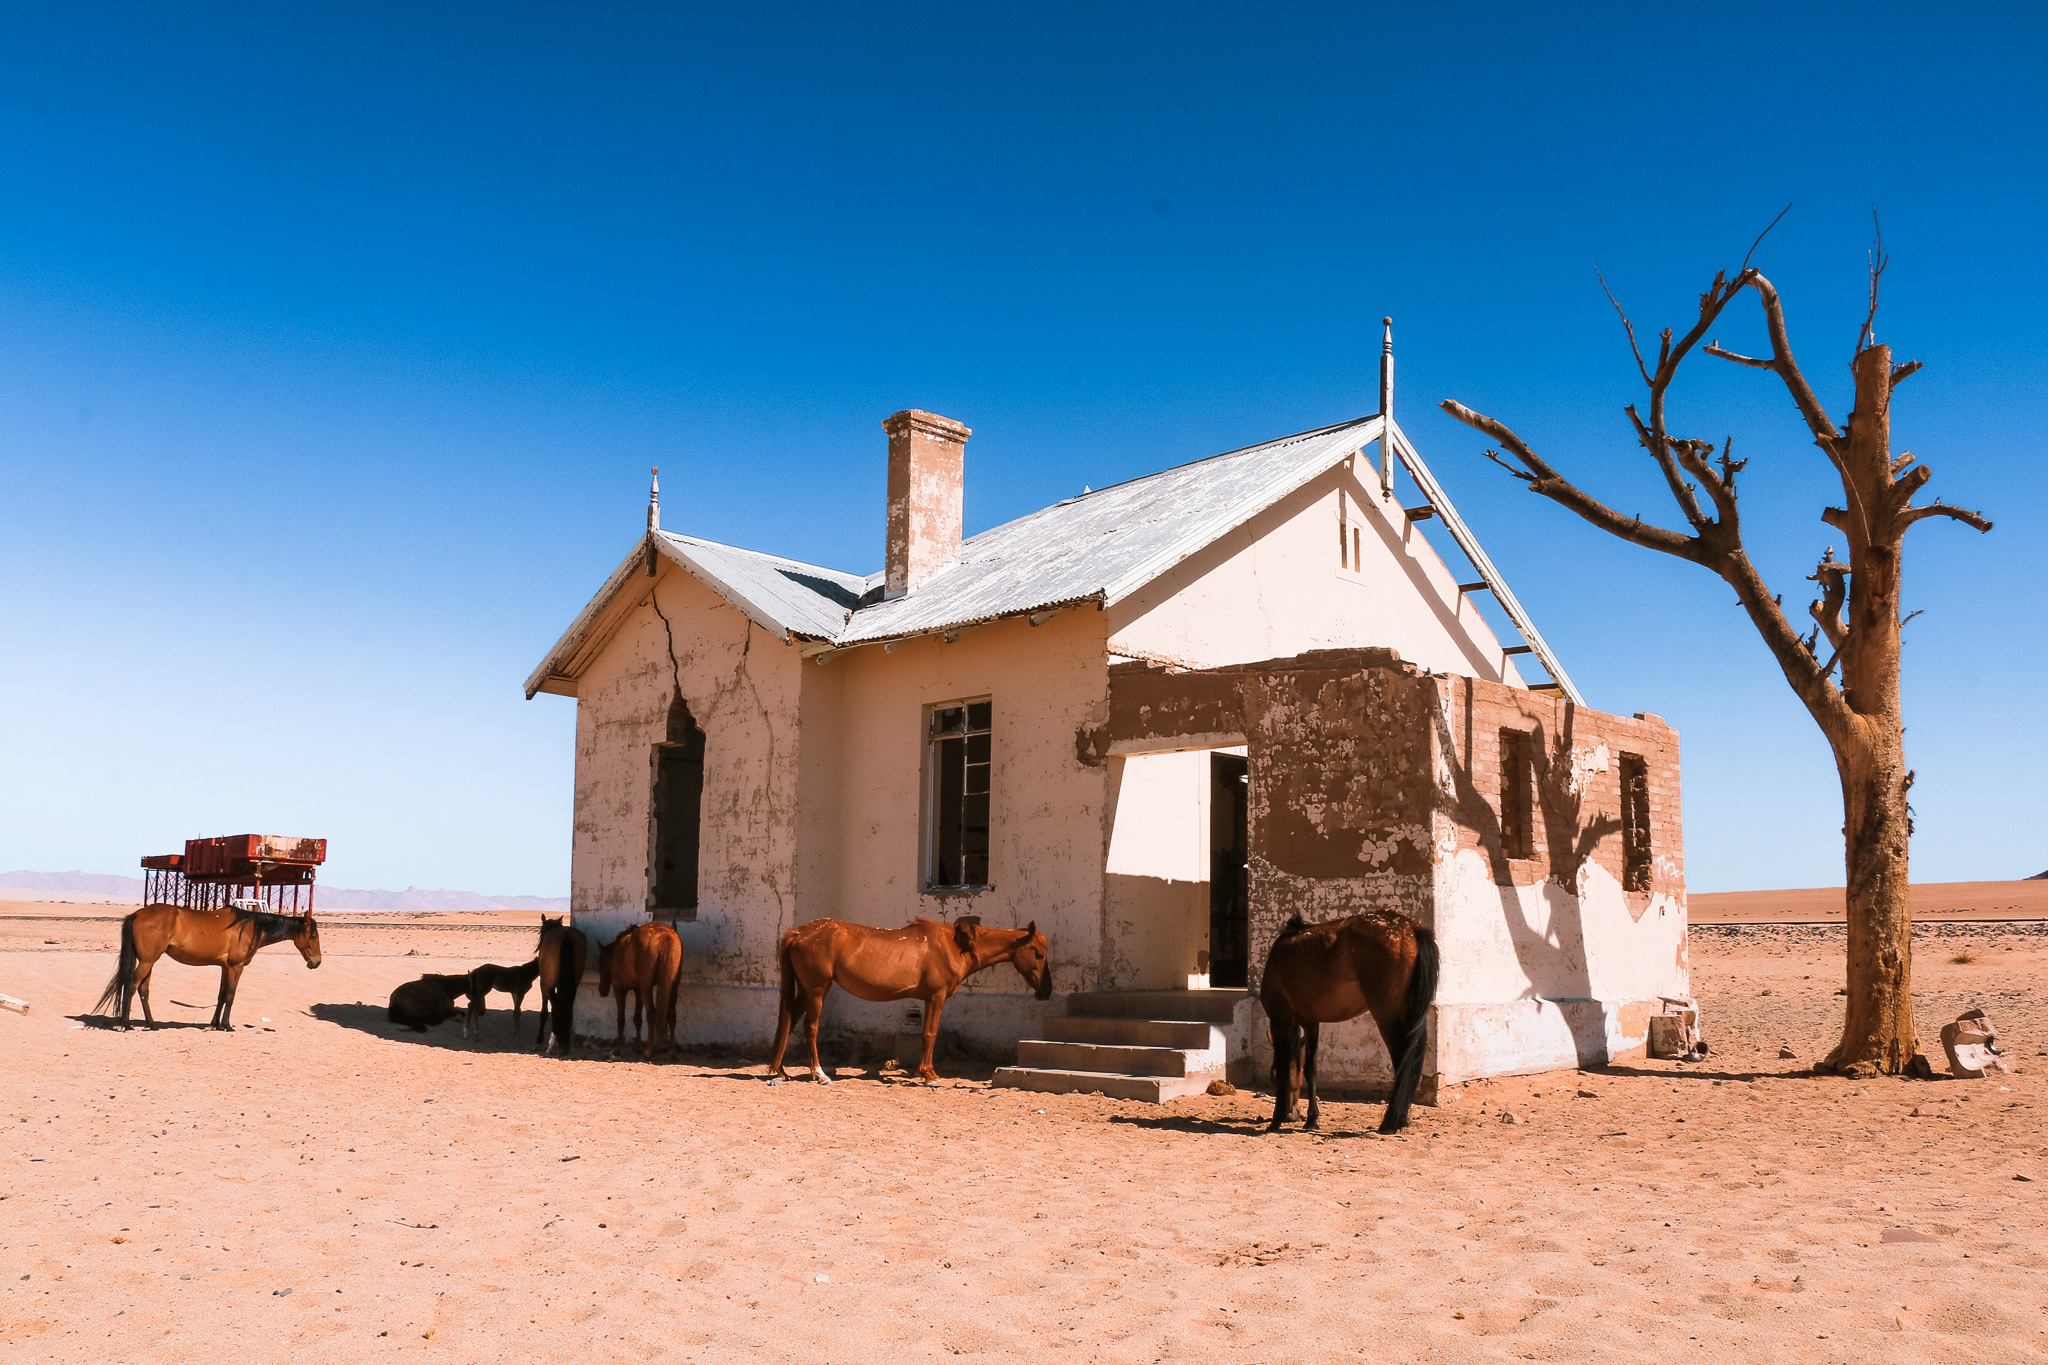 Namibia photos to inspire you to travel and see the wild horses